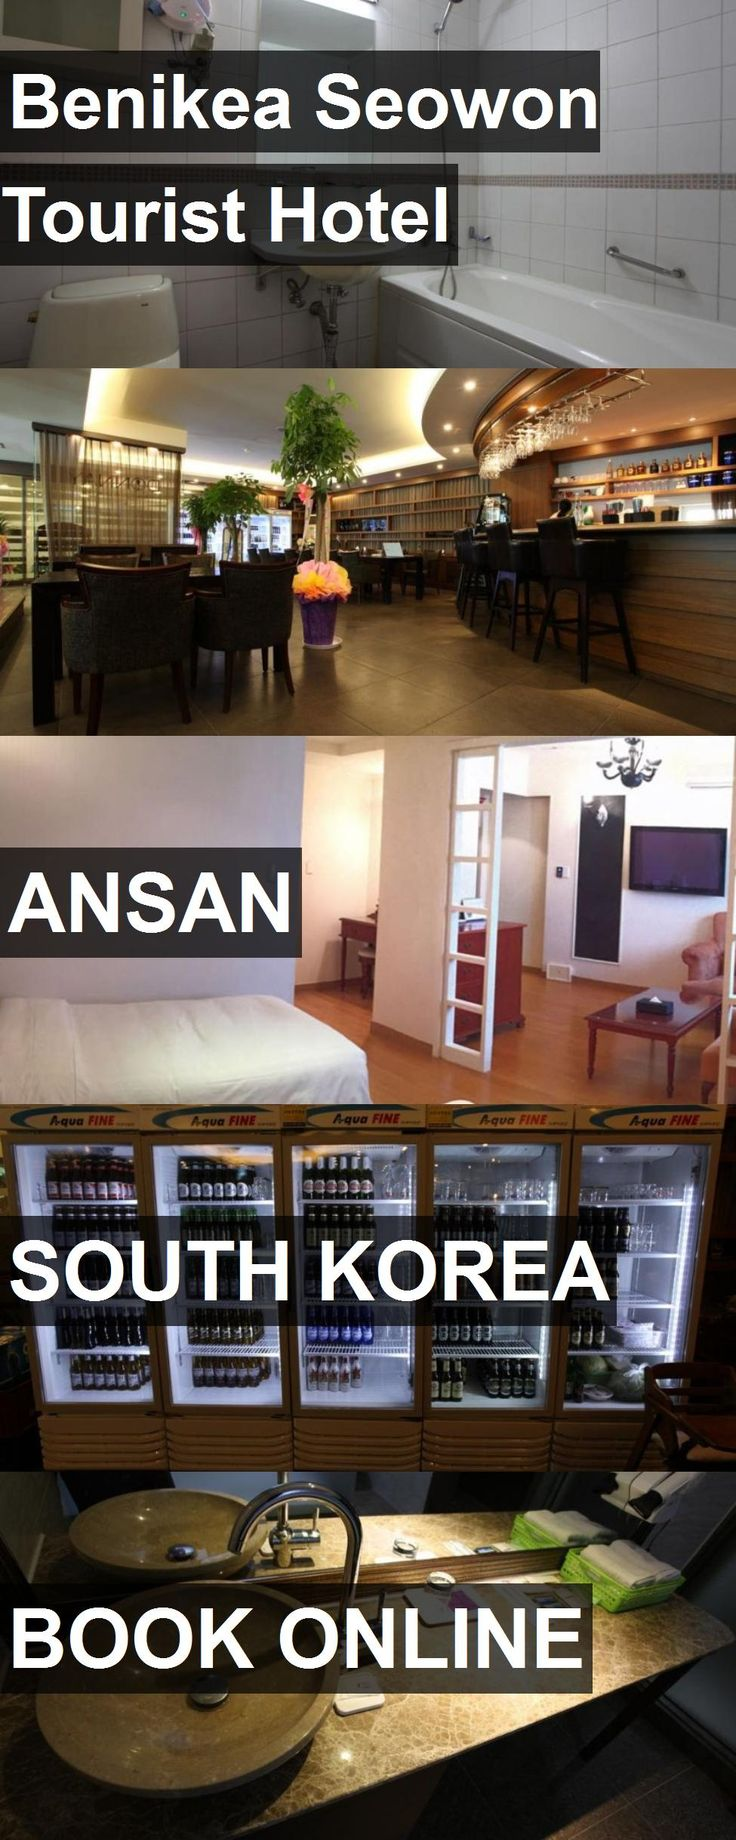 Benikea Seowon Tourist Hotel in Ansan, South Korea. For more information, photos, reviews and best prices please follow the link. #SouthKorea #Ansan #travel #vacation #hotel